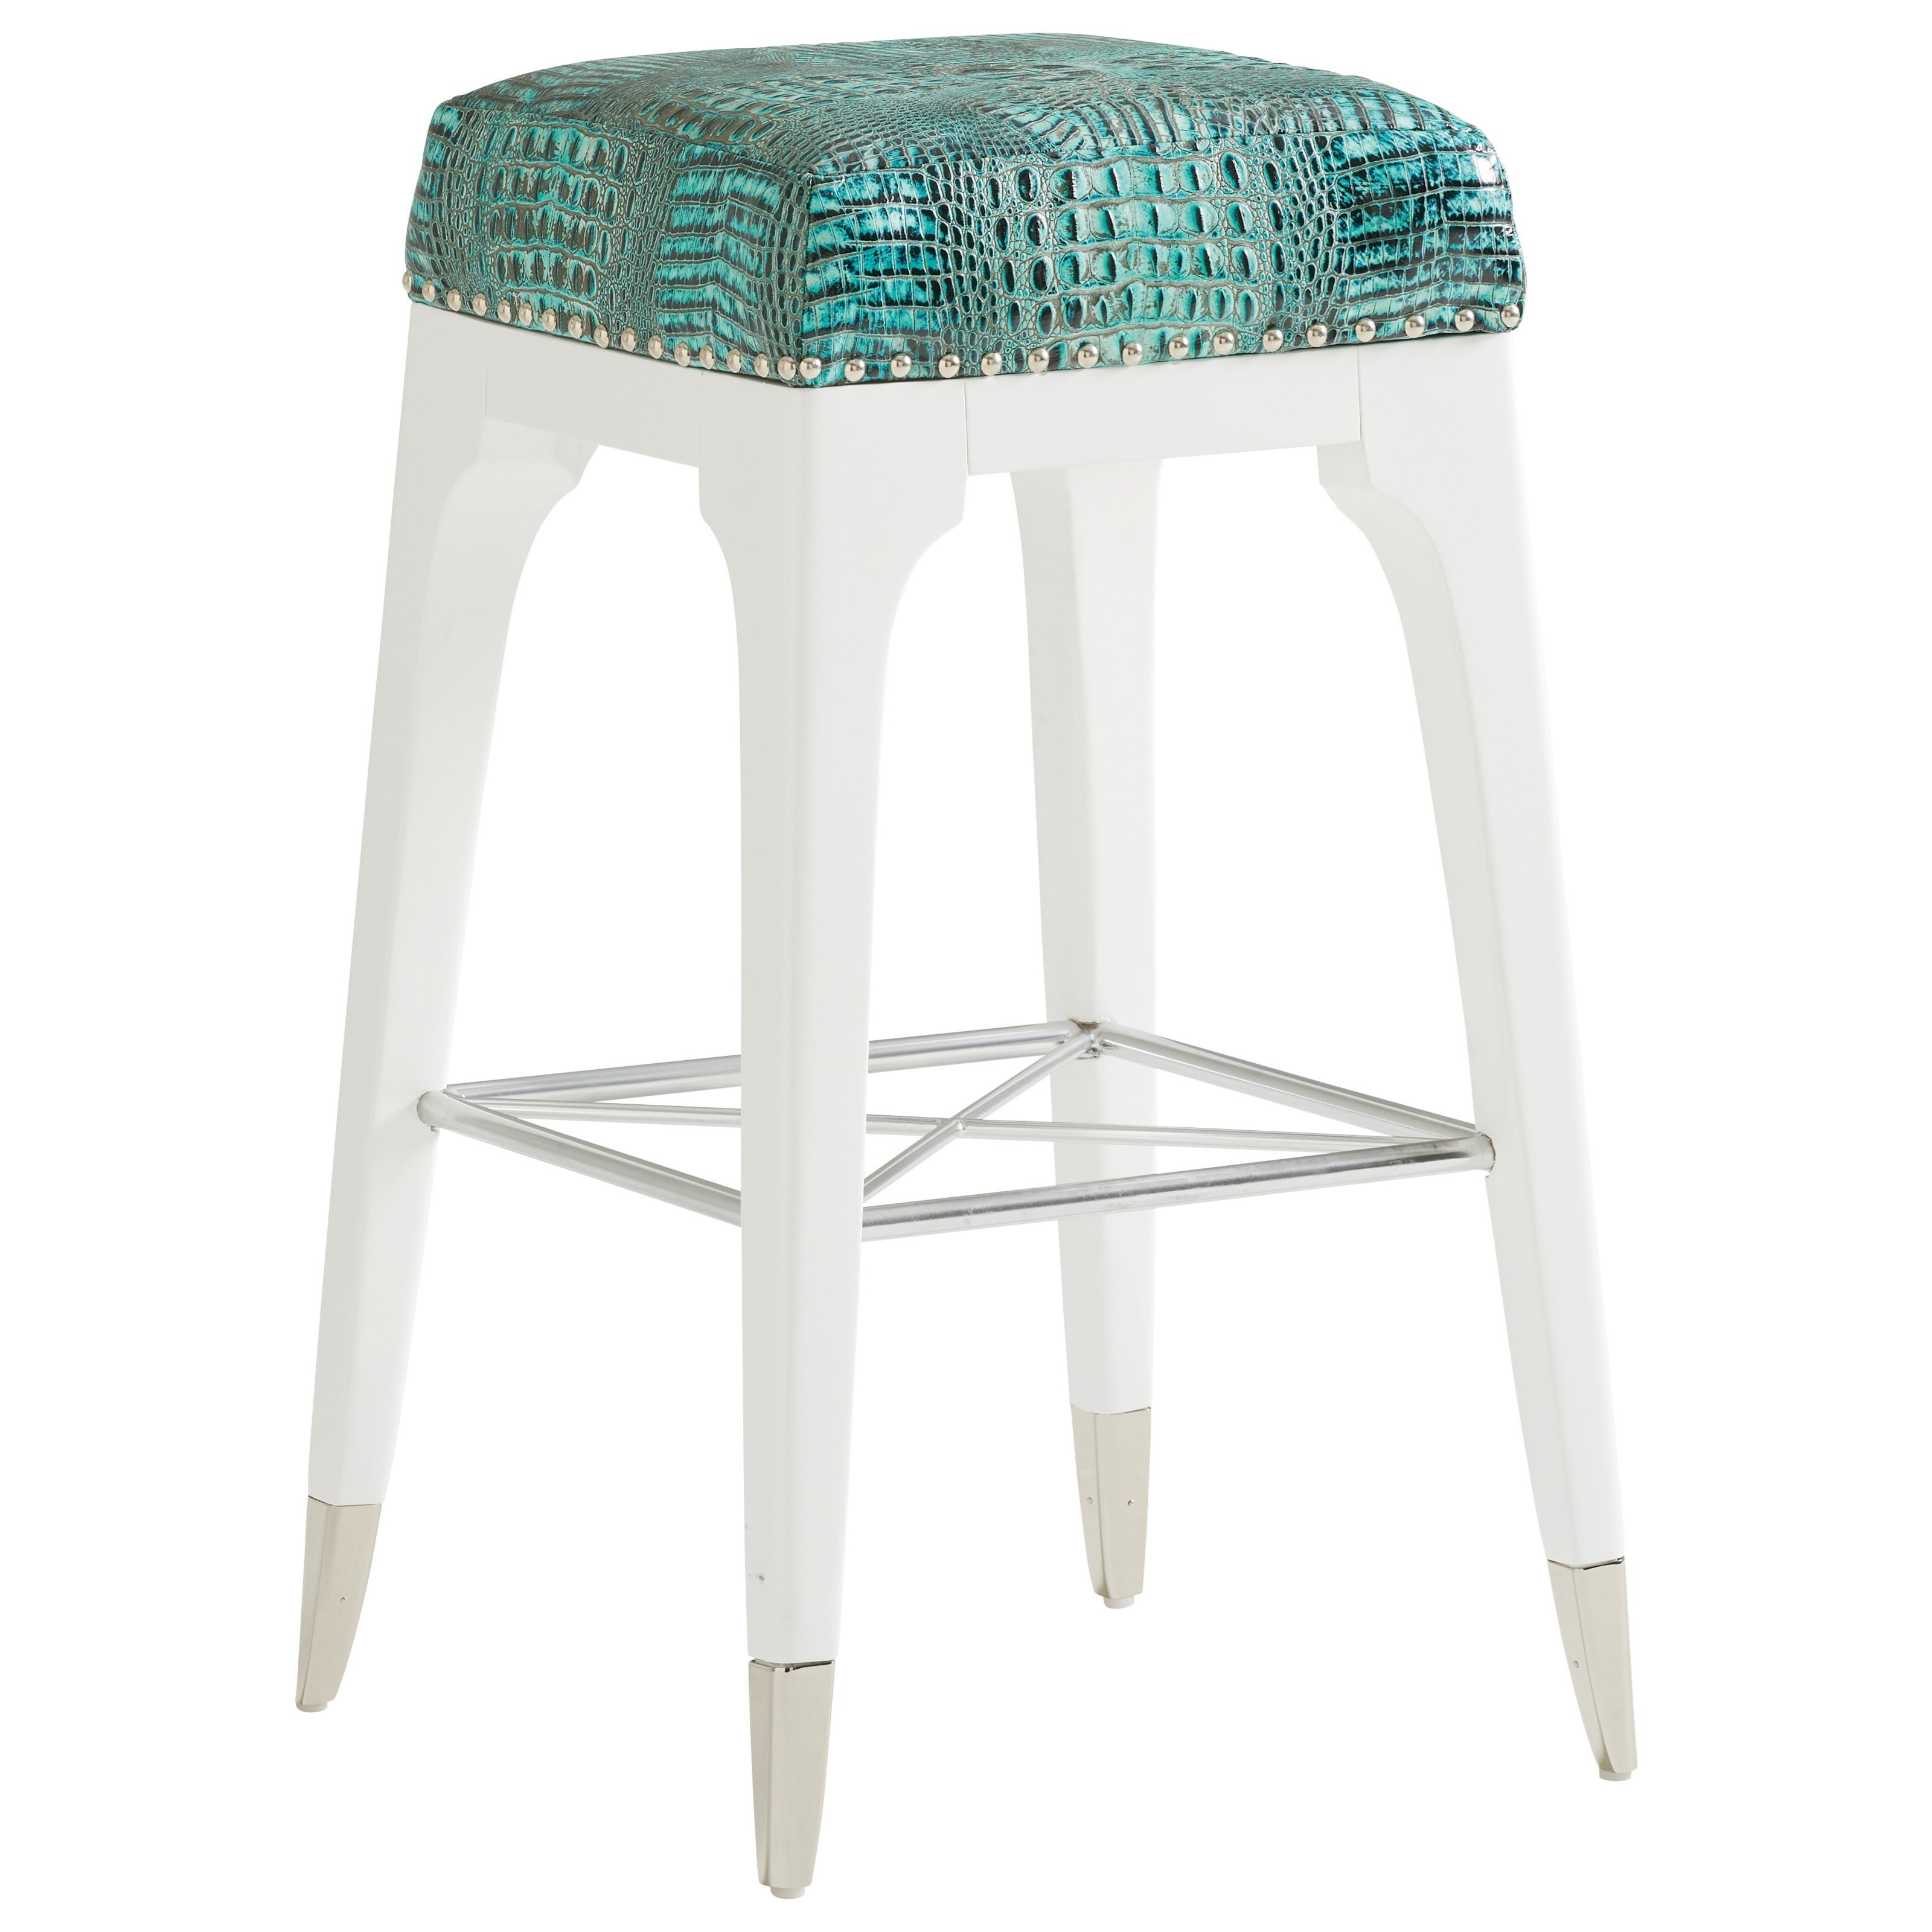 Avondale Northbrook Bar Stool - Custom by Lexington at Johnny Janosik